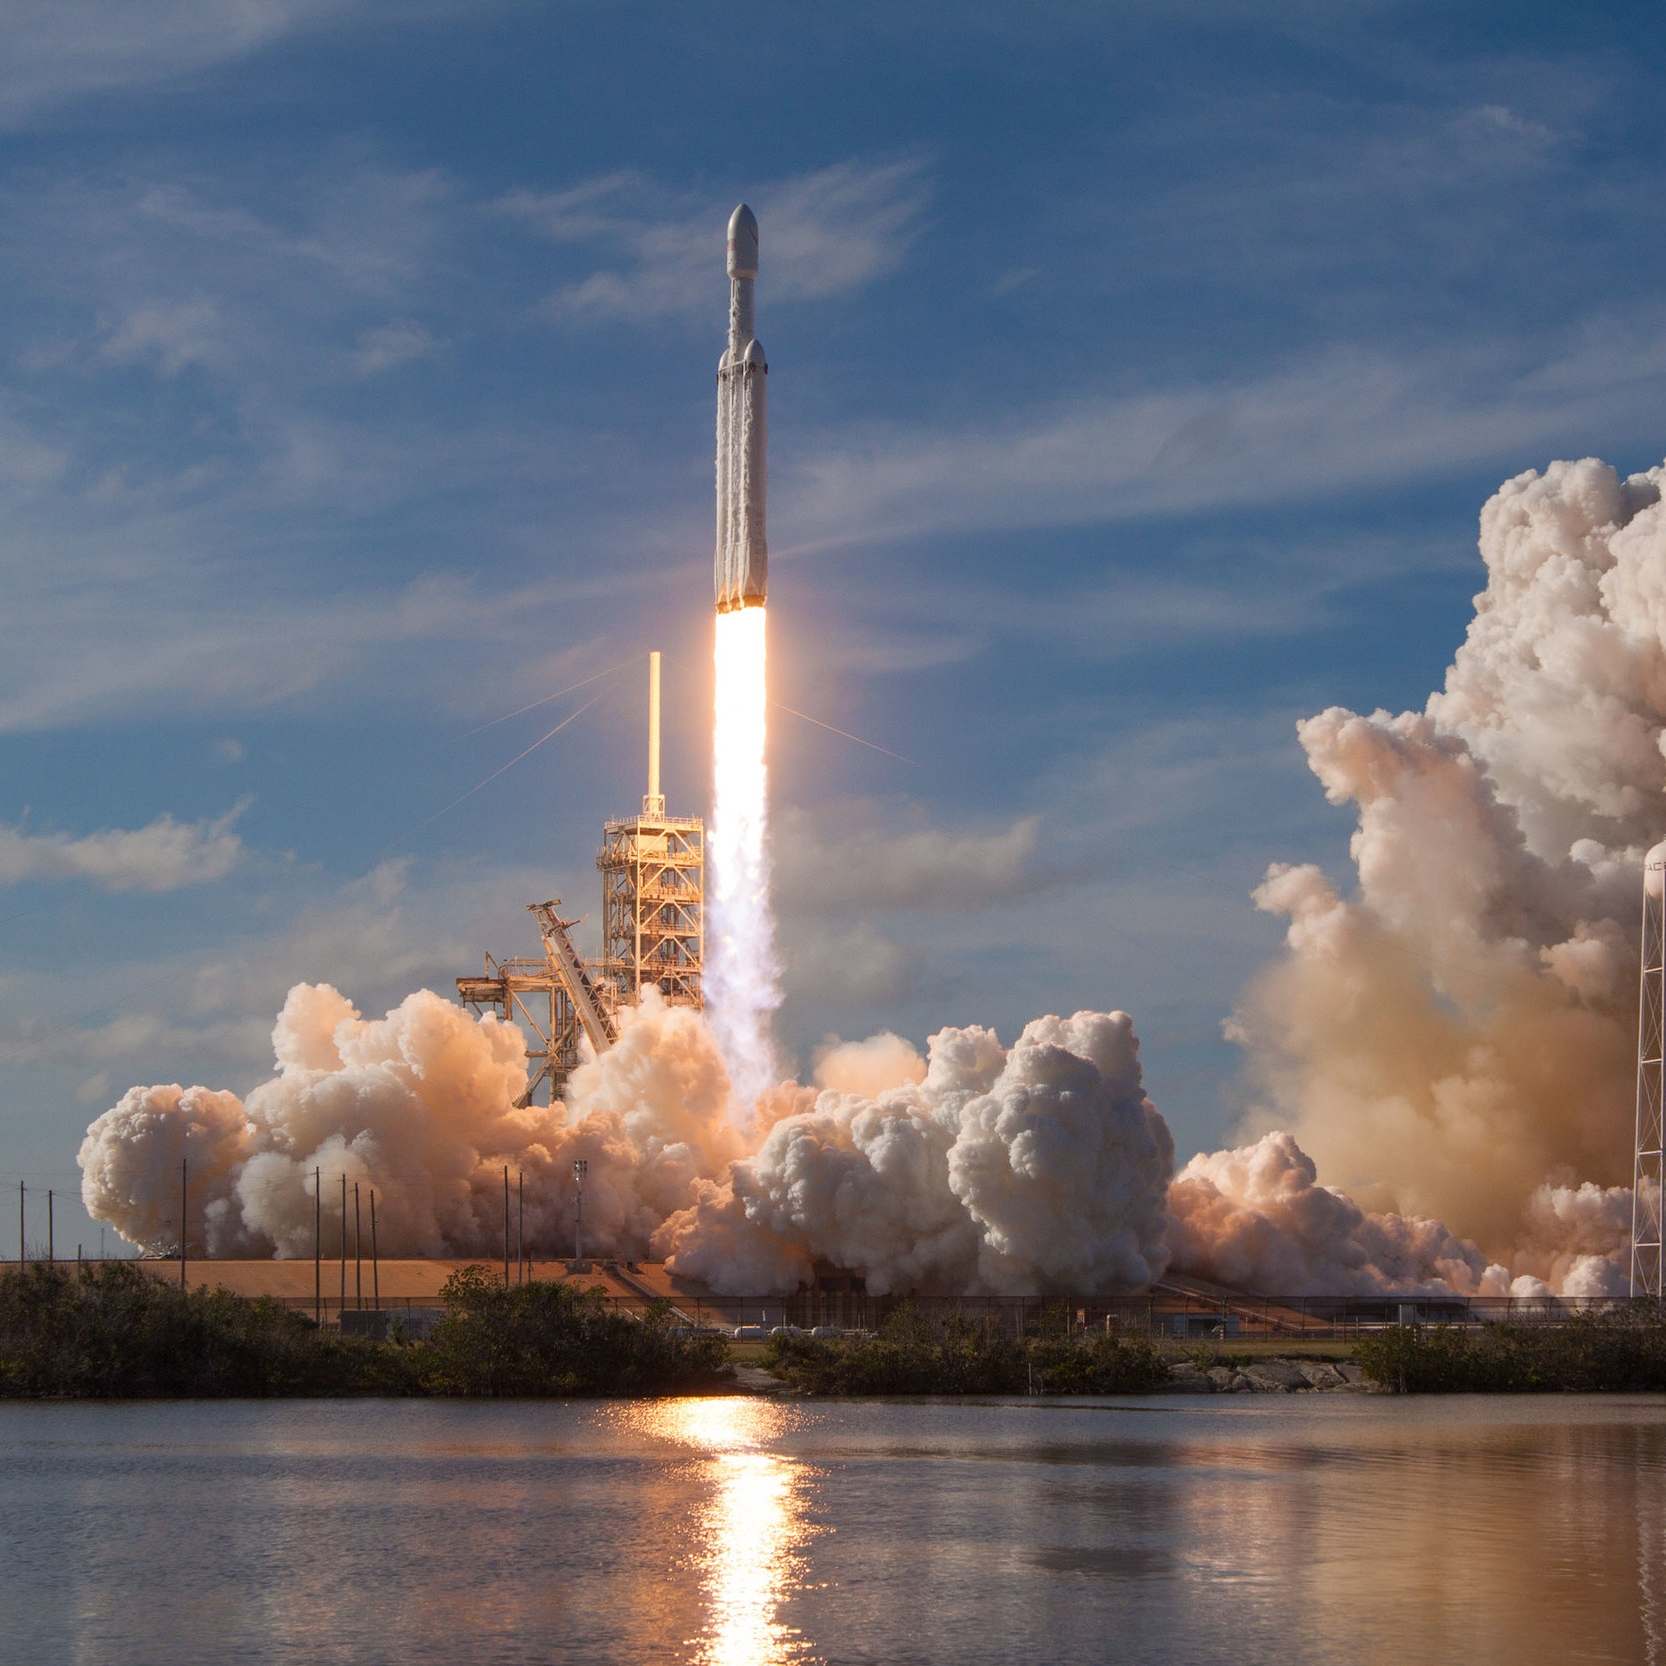 Falcon Heavy - The current workhorse of the SpaceX fleetHeight: 229 feet tallThrust: 5.1 million pounds (28 Boeing 747s)Payload: 119,000 lbs (12.5 elephants)Cost of each launch: $90 million